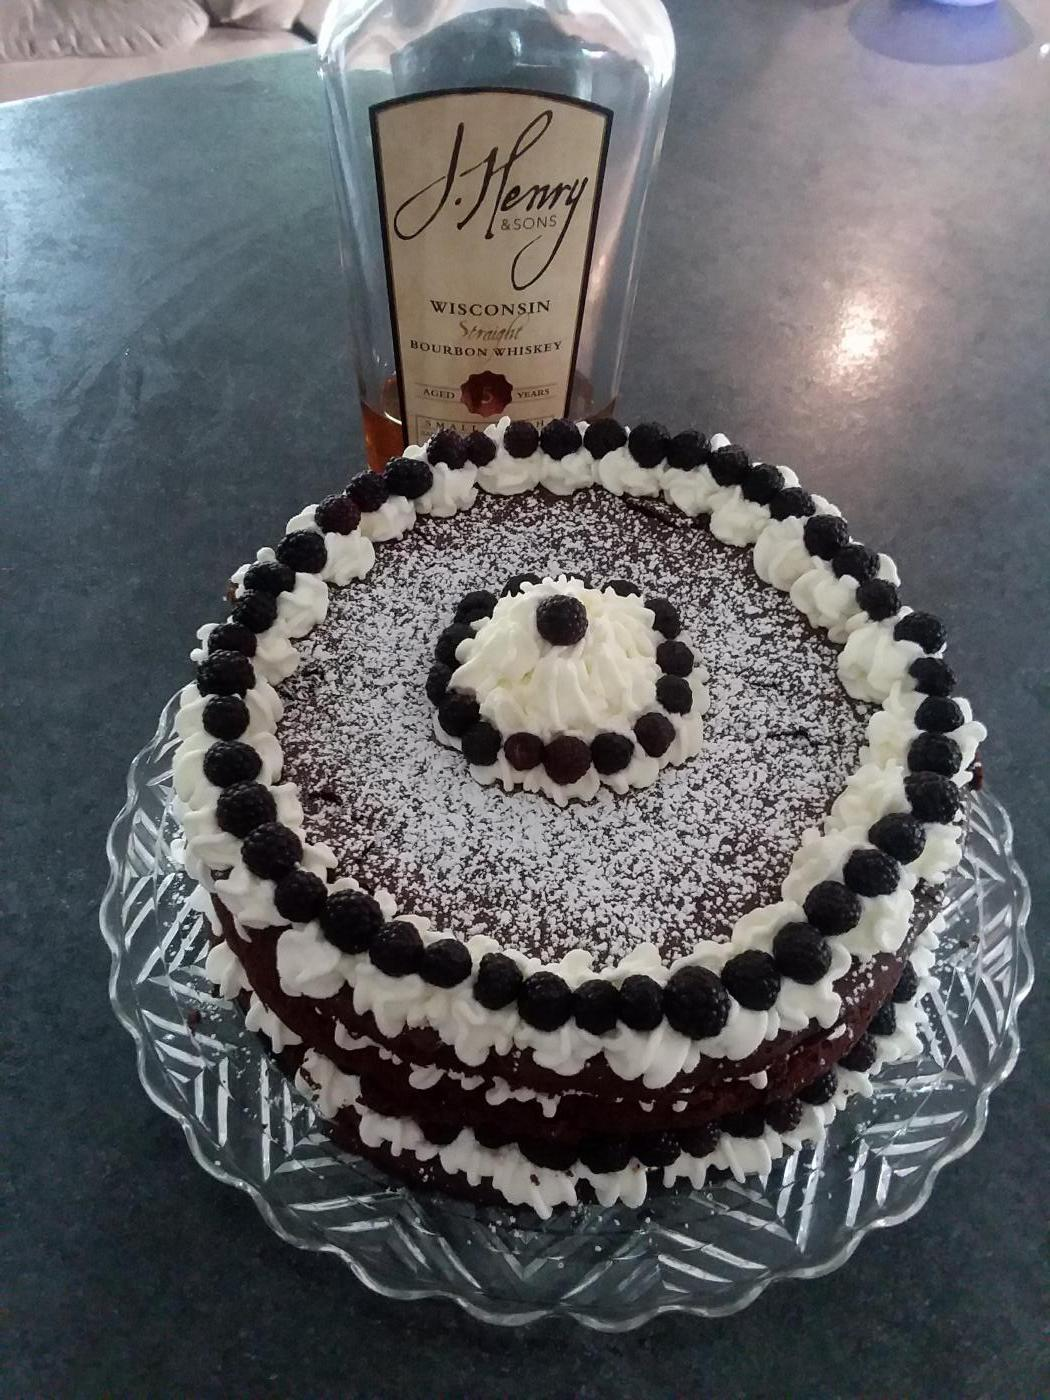 Marie's Good Neighbor Torte is ringed with whipped cream and blackberries and contains J. Henry Bourbon